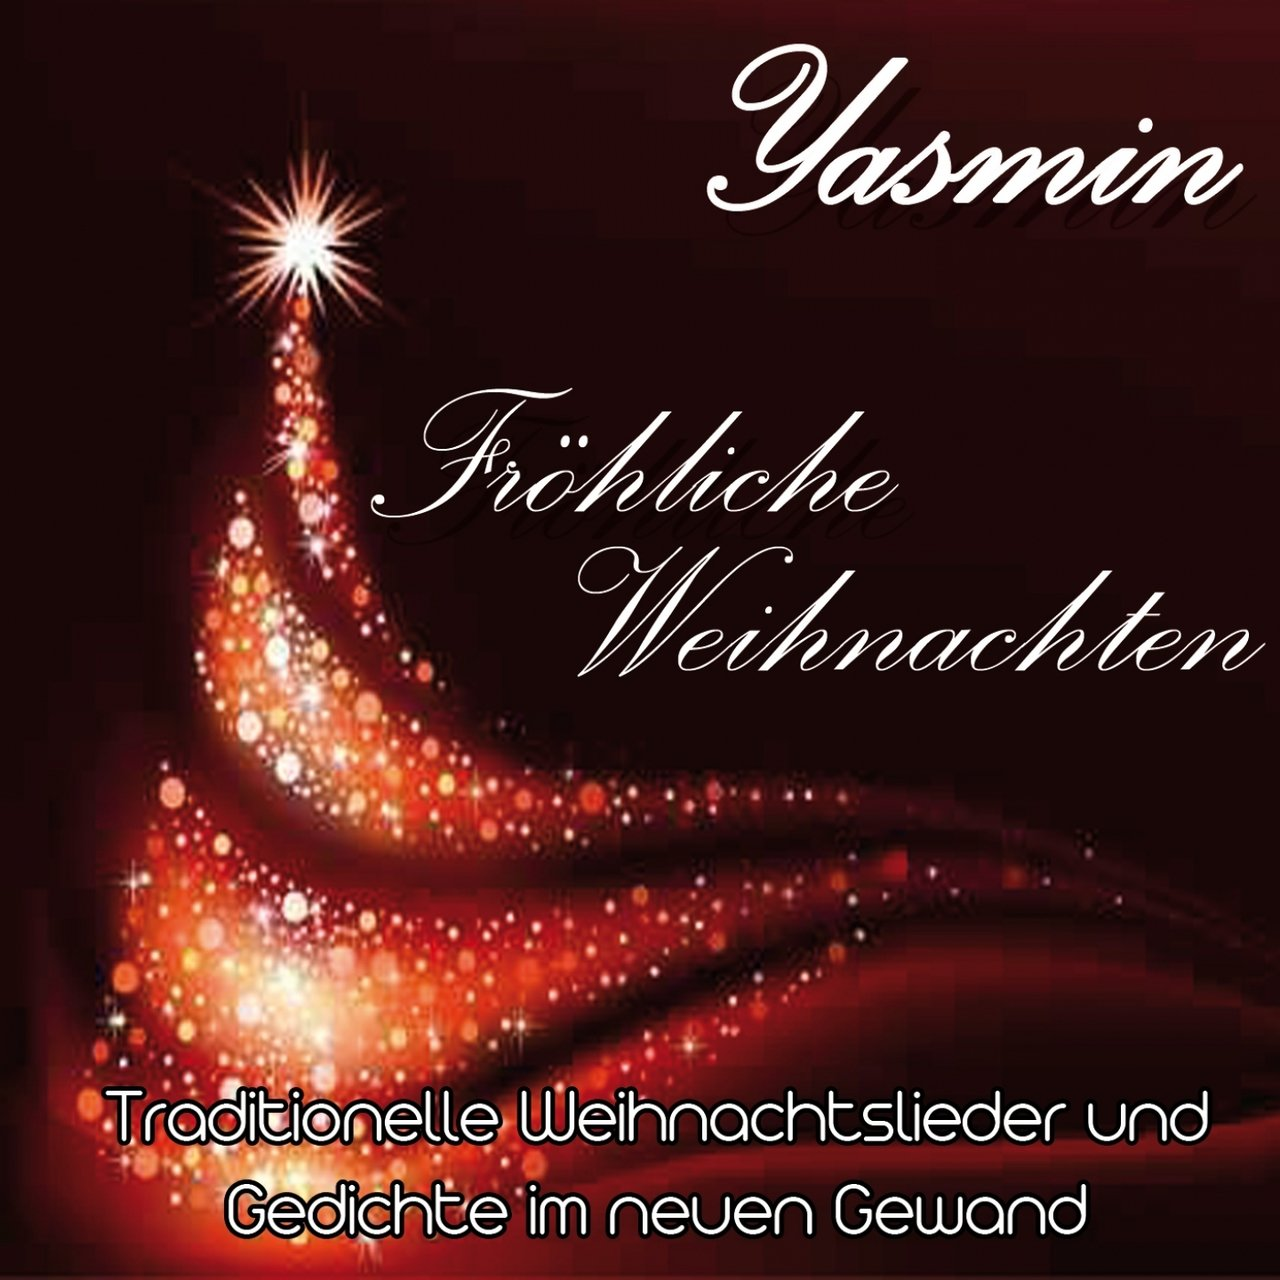 Weihnachtslieder Remix.Tidal Listen To On My Own Steve Smart Westfunk Remix On Tidal